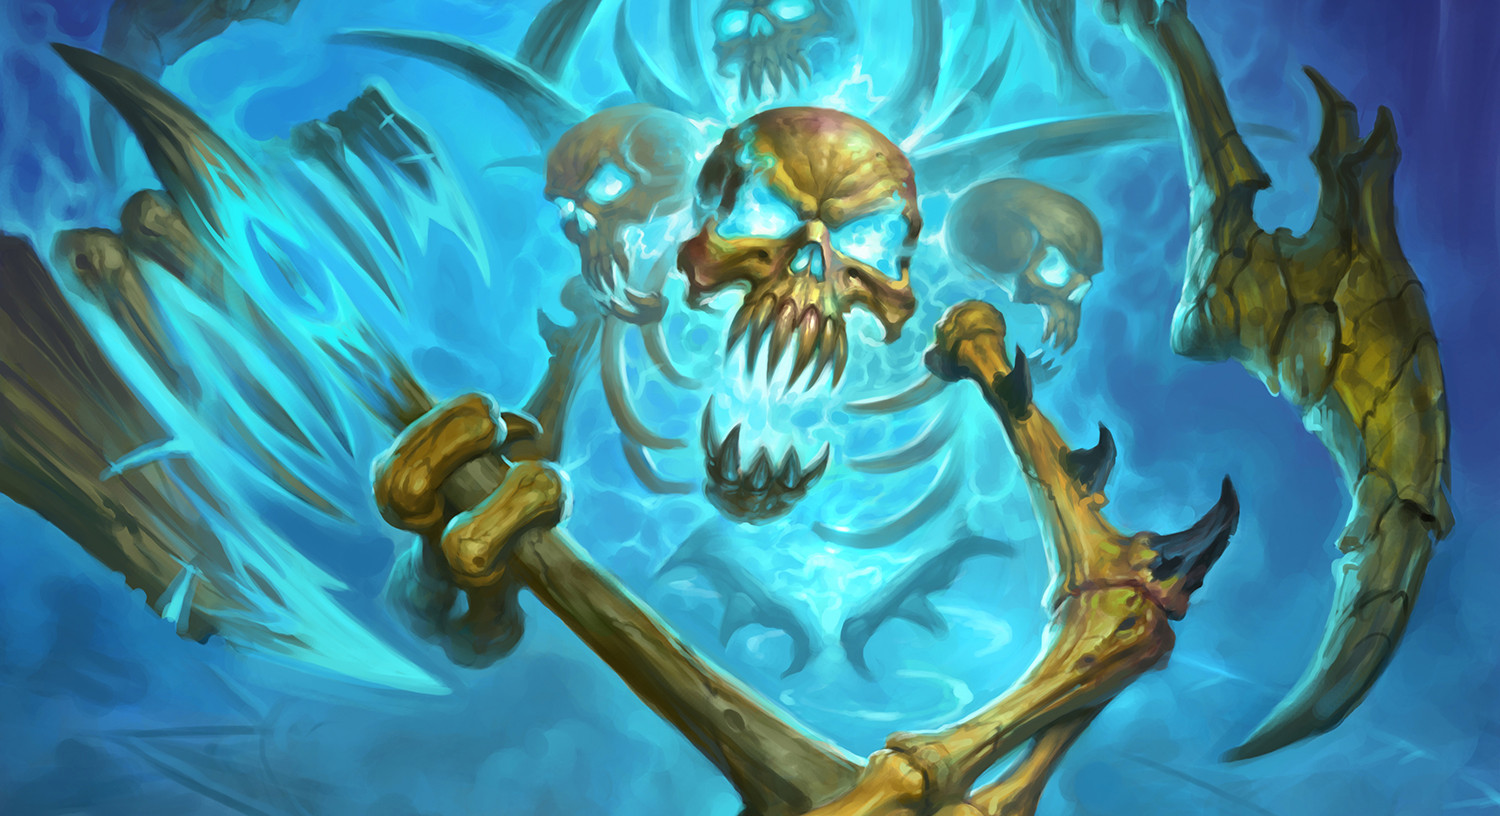 Knights Of The Frozen Throne Wallpaper: Hearthstone Knights Of The Frozen Throne Wallpapers High